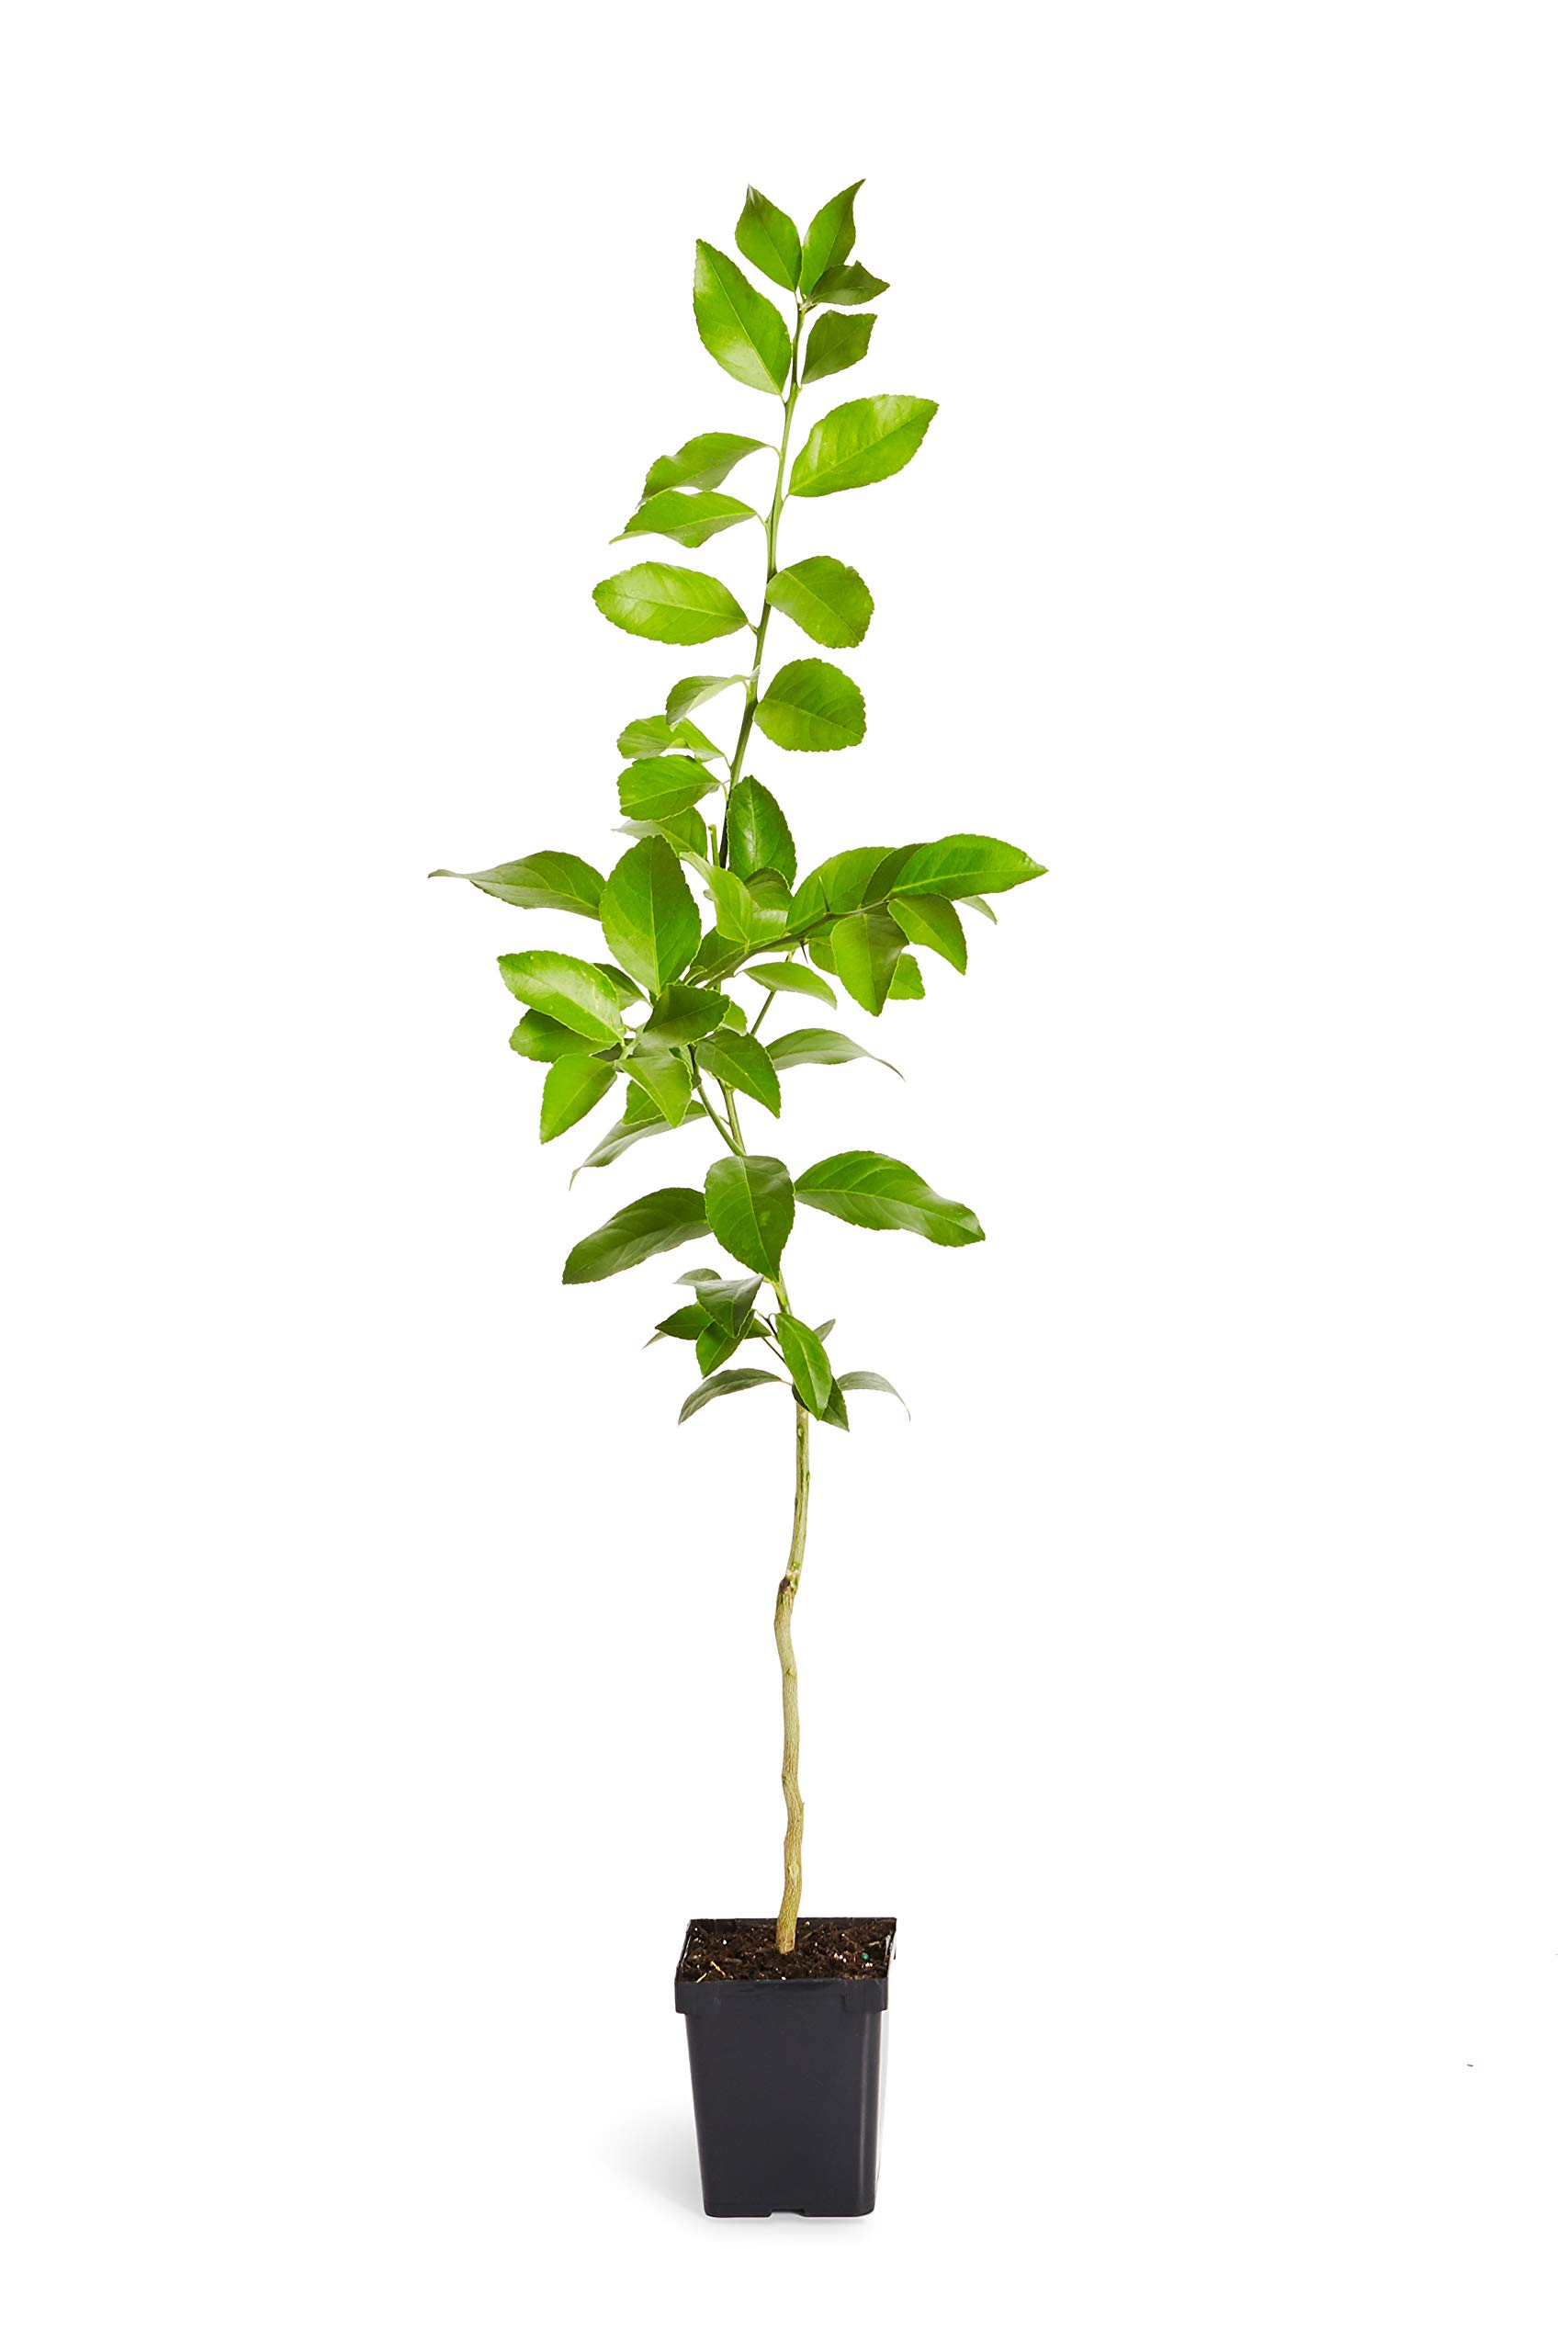 Improved Meyer Lemon Tree- Dwarf Fruit Trees - Indoor/Outdoor Live Potted Citrus Tree - 1-2 ft. - Cannot Ship to FL, CA, TX, LA or AZ